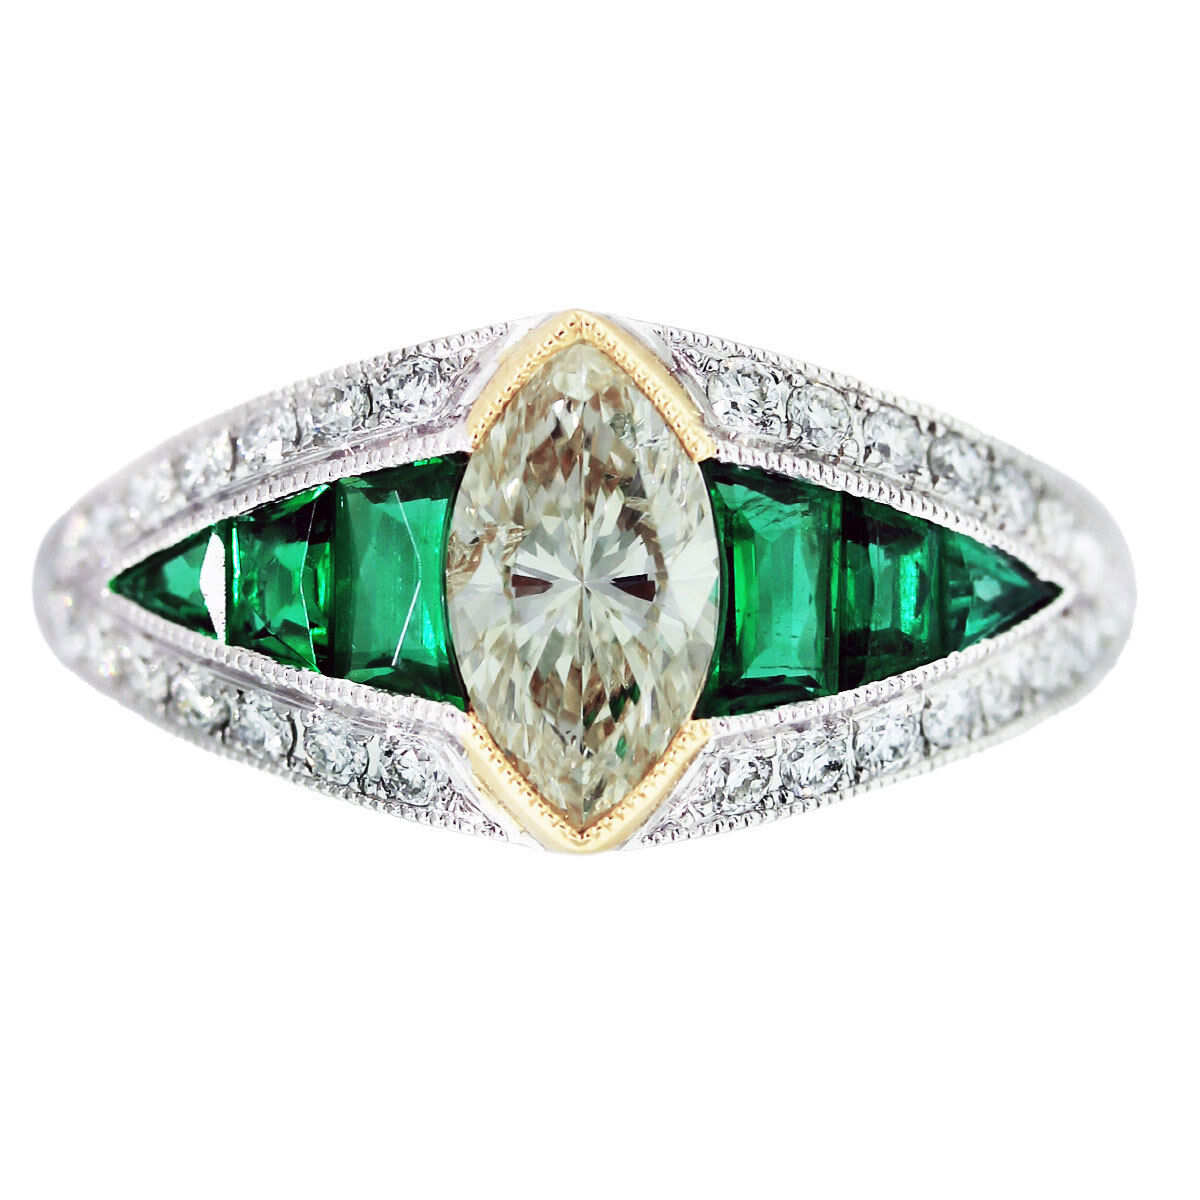 .86 Ct Diamond, Emerald, Platinum, and Yellow Gold Vintage Style Engagement Ring